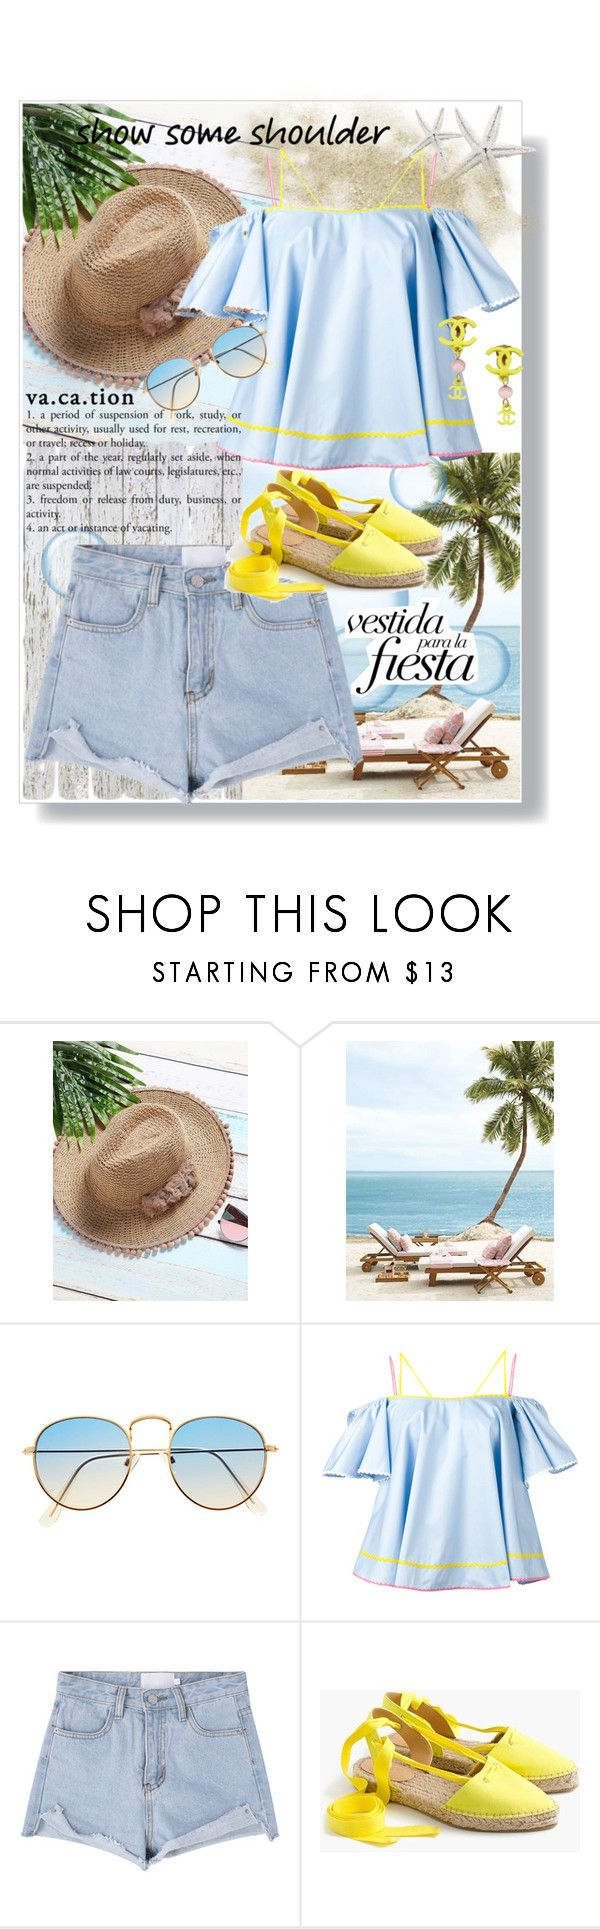 """""""Vacation"""" by gmg5 ❤ liked on Polyvore featuring Anna October, J.Crew, Chanel, beach and offshoulder"""